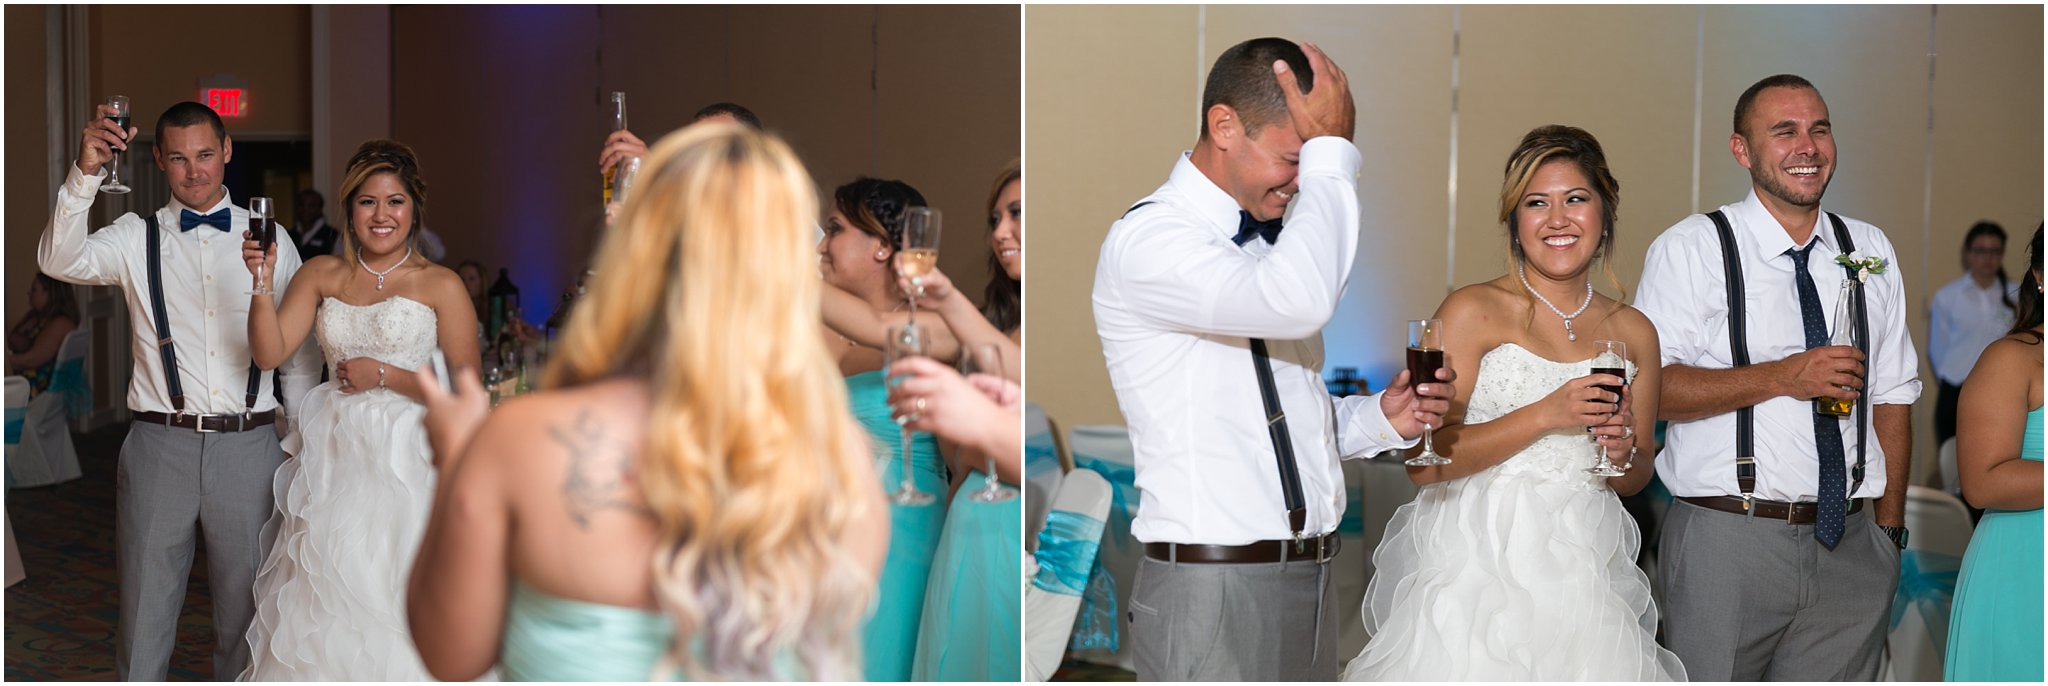 jessica_ryan_photography_wedding_virginia_beach_oceanfront_holiday_inn_north_suites_hotel_wedding_0781